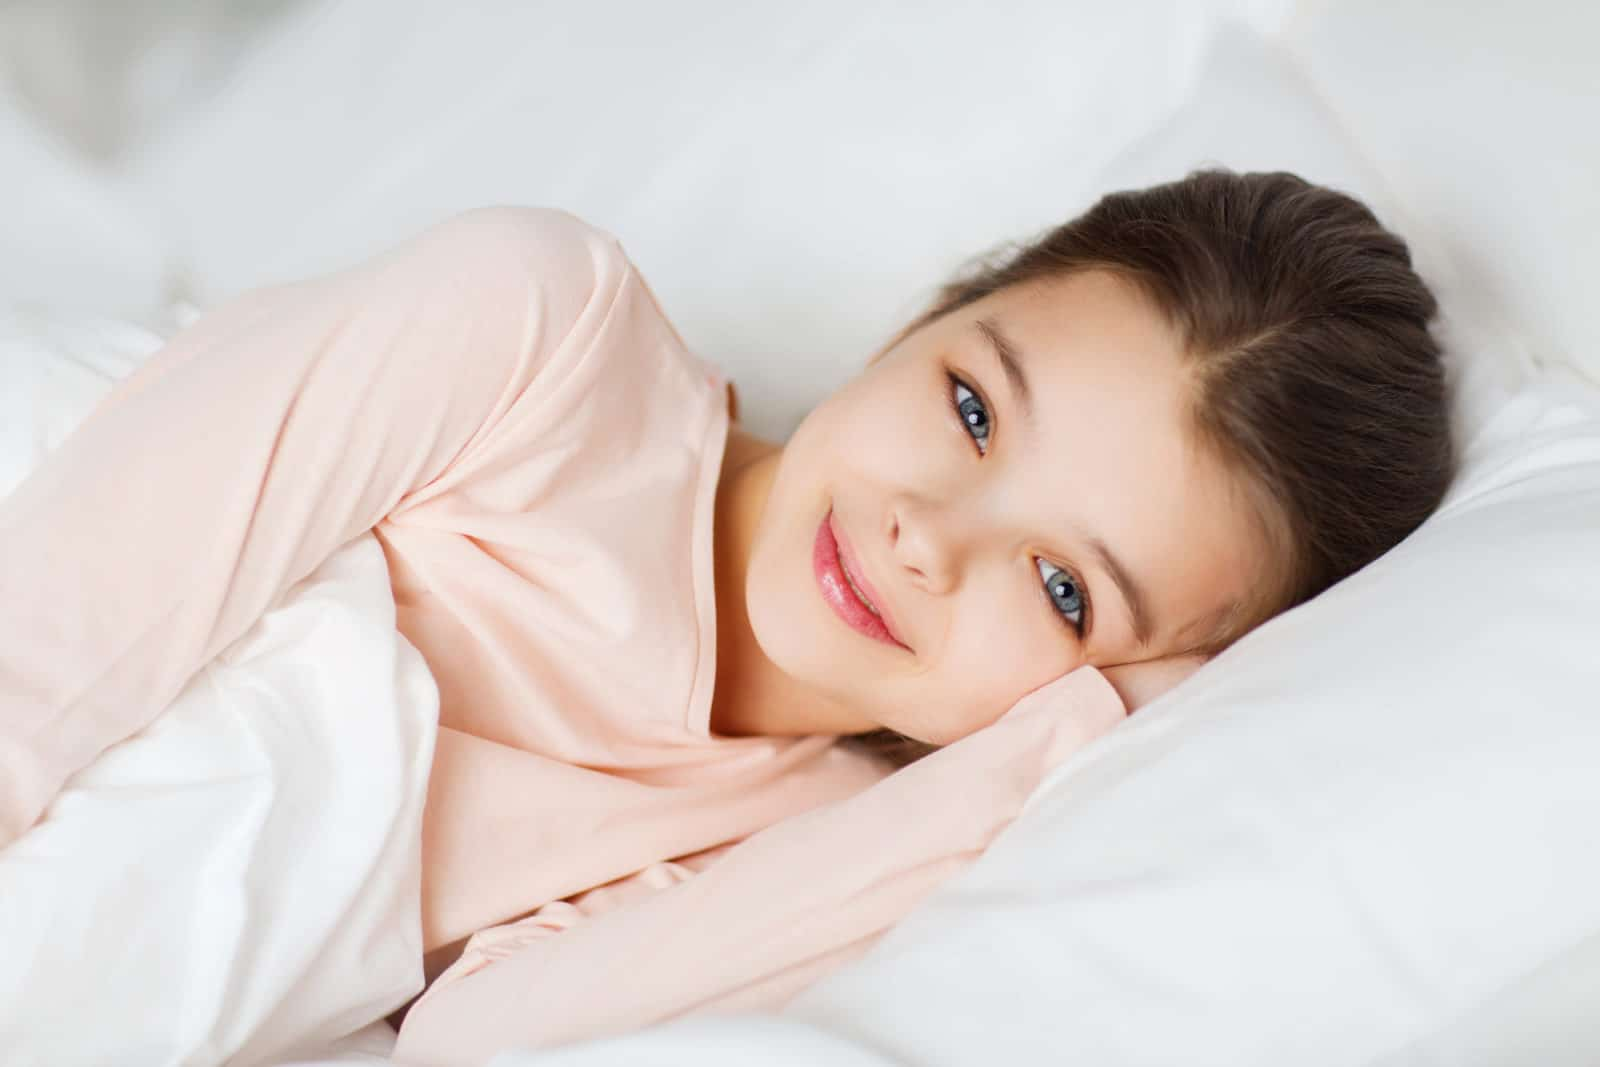 cute girl with her head on a pillow